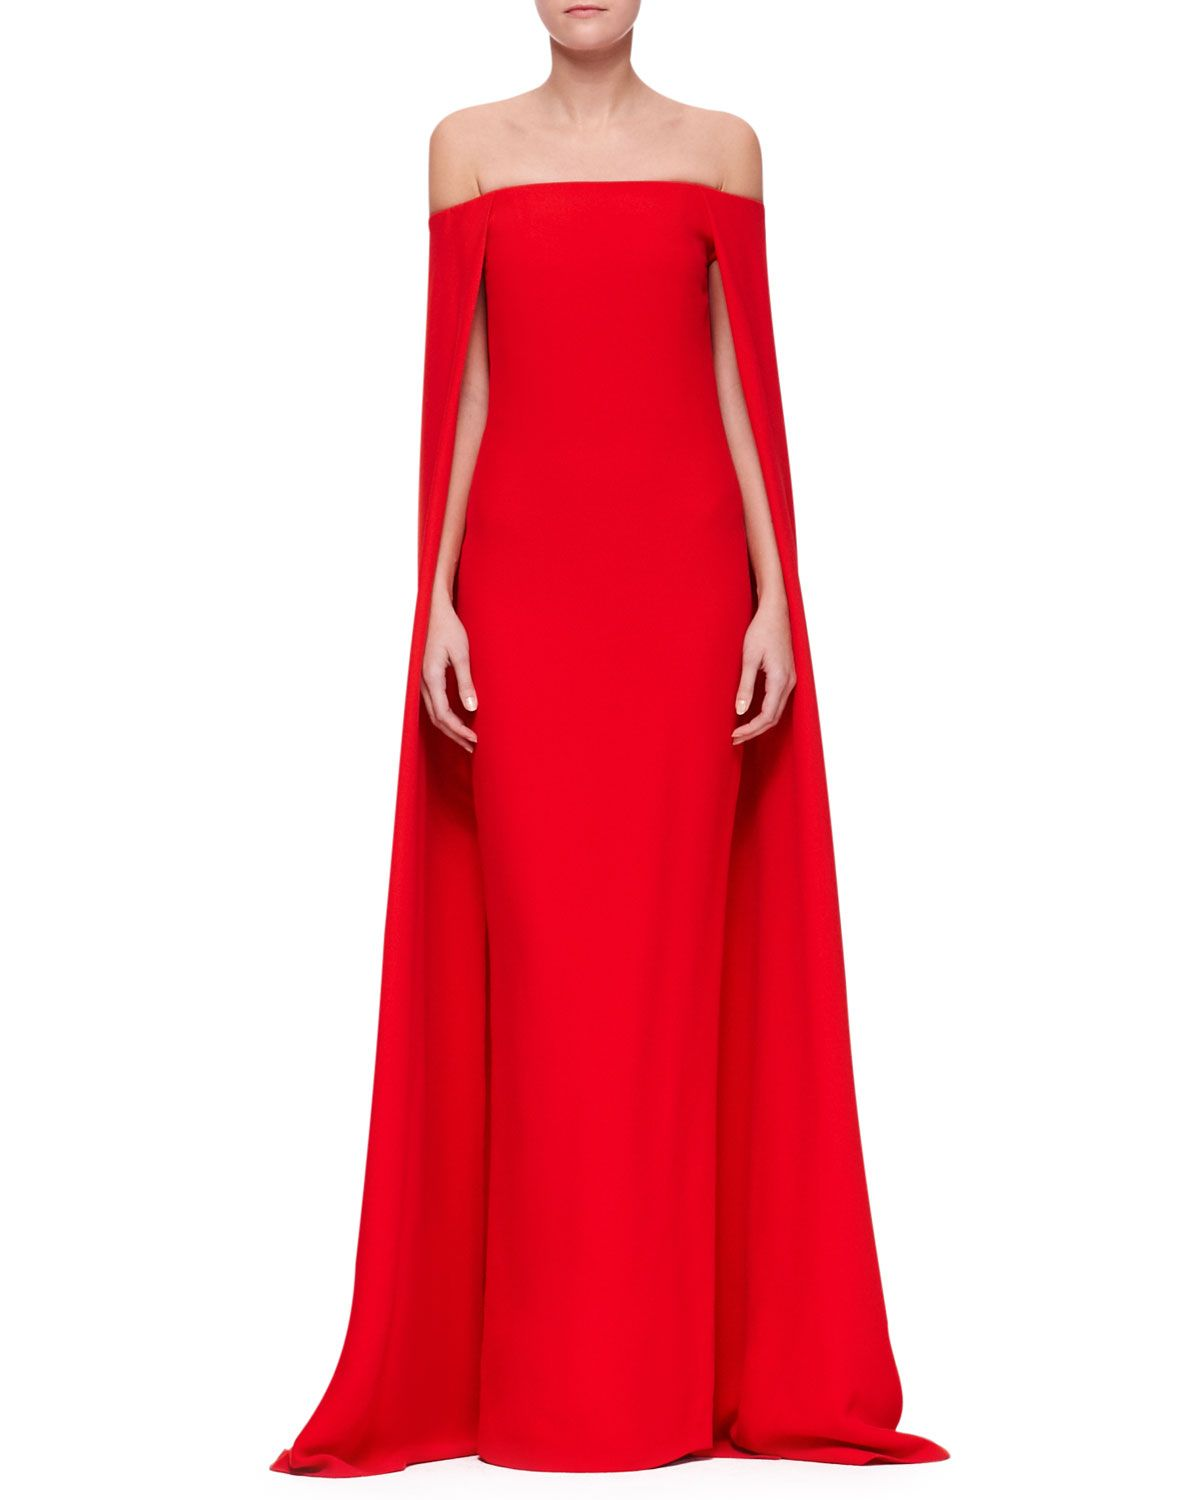 Ralph lauren collection audrey cape evening gown neiman marcus ralph lauren collection audrey cape evening gown neiman marcus junglespirit Gallery